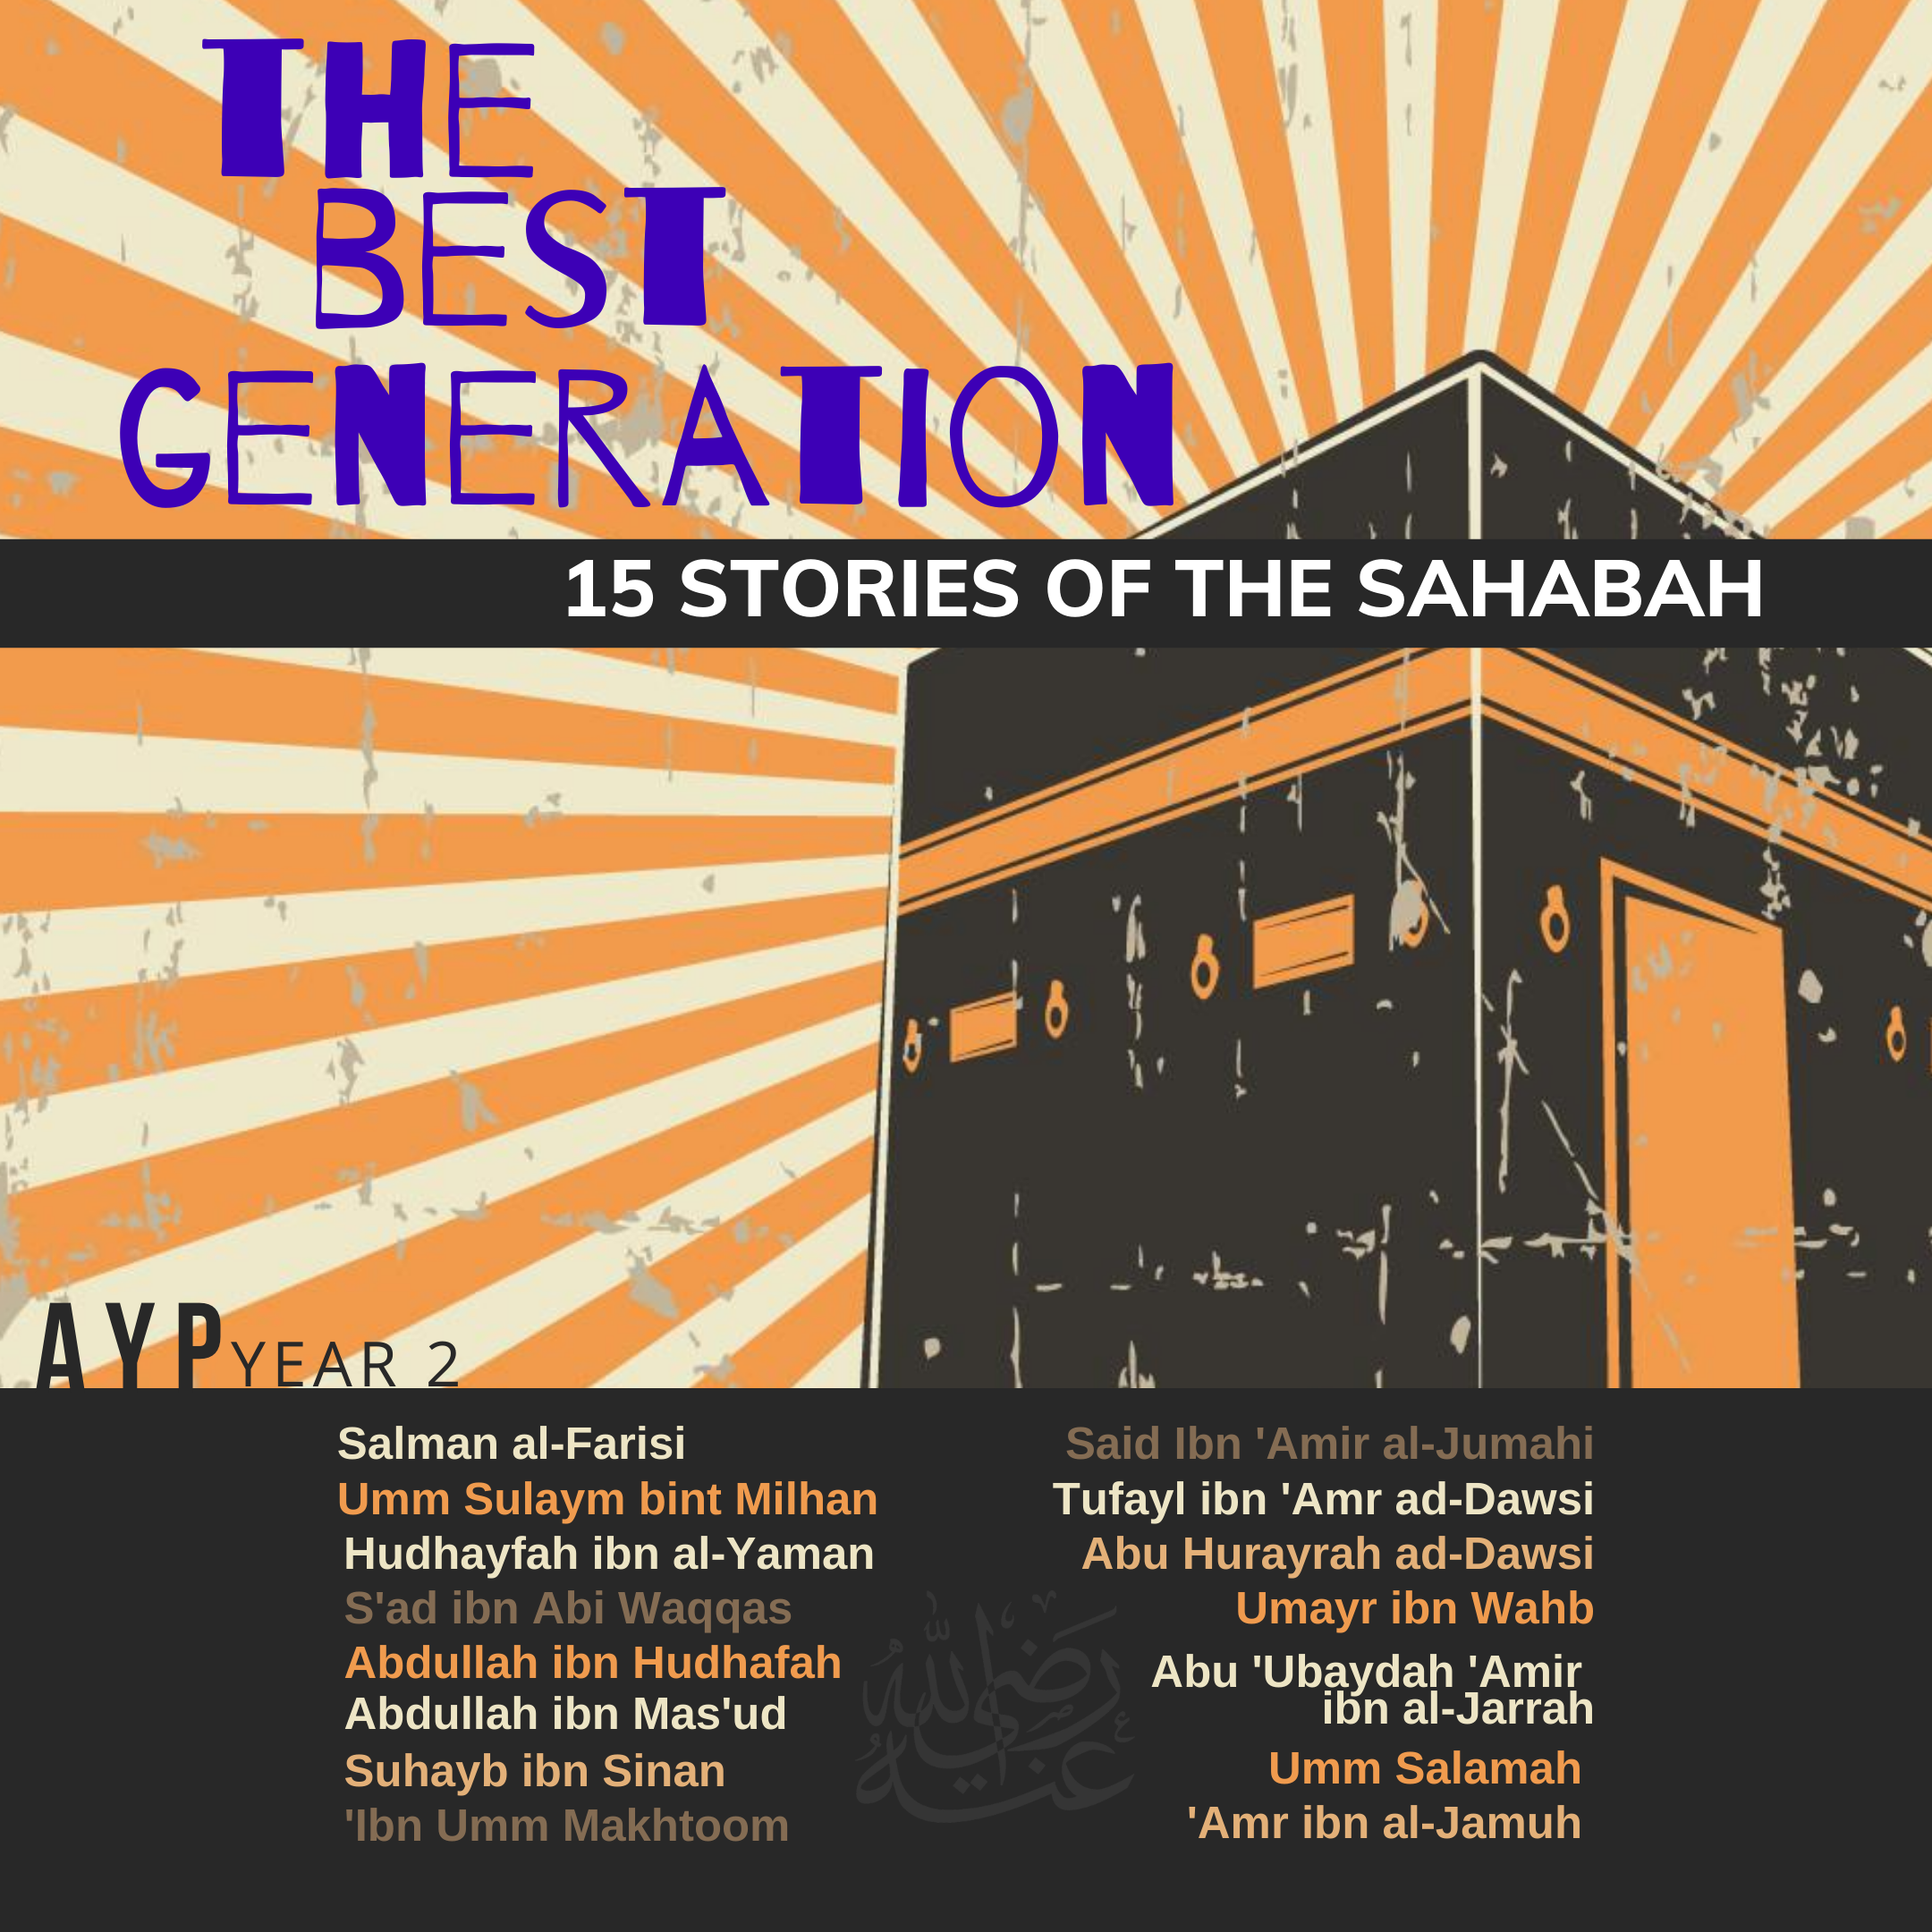 AYP: Year 2 - The Best Generation